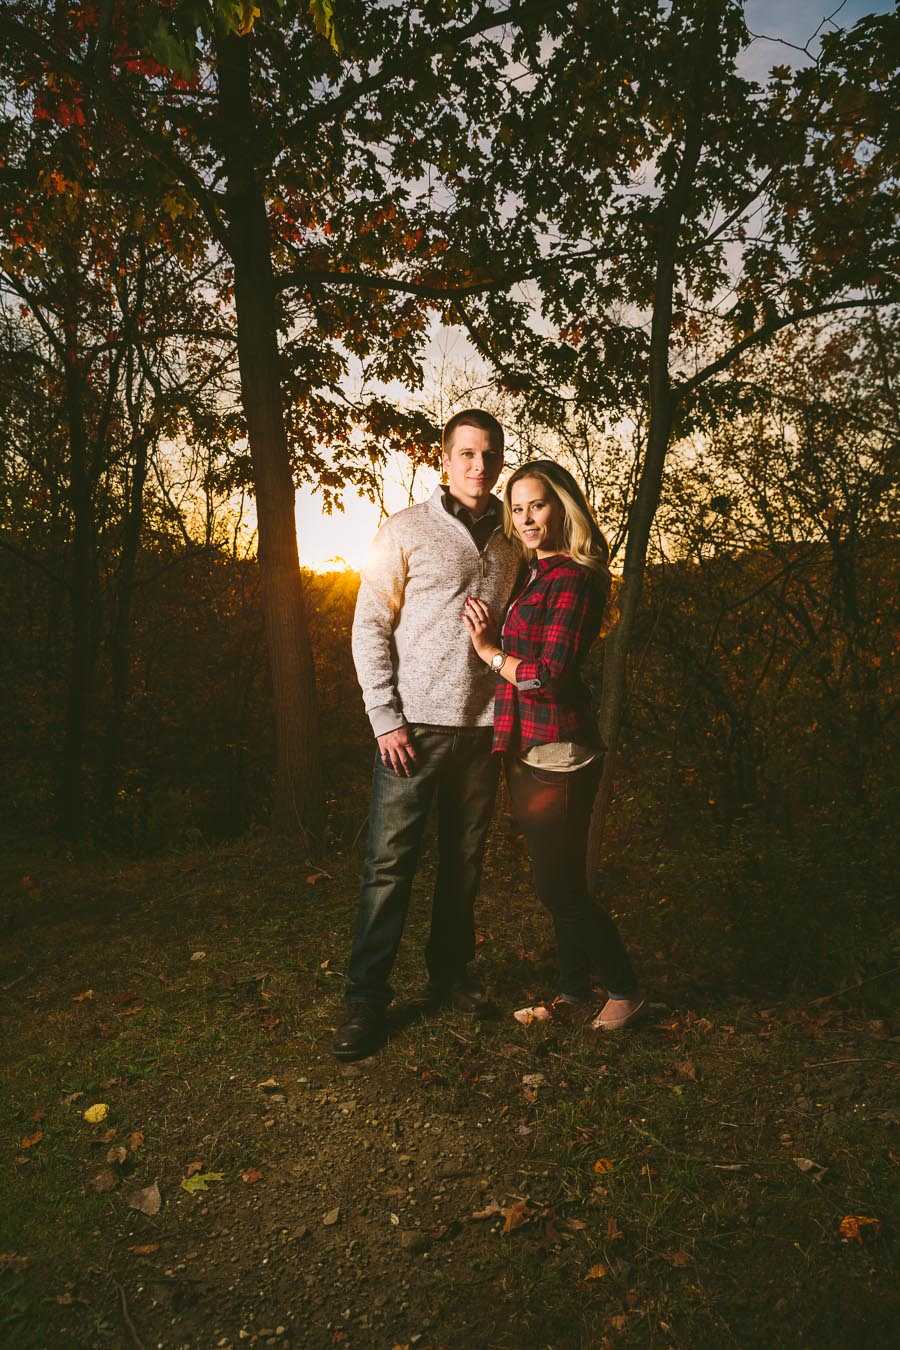 garfield-ohio-engagement-photography-bedford-reservation-61.jpg